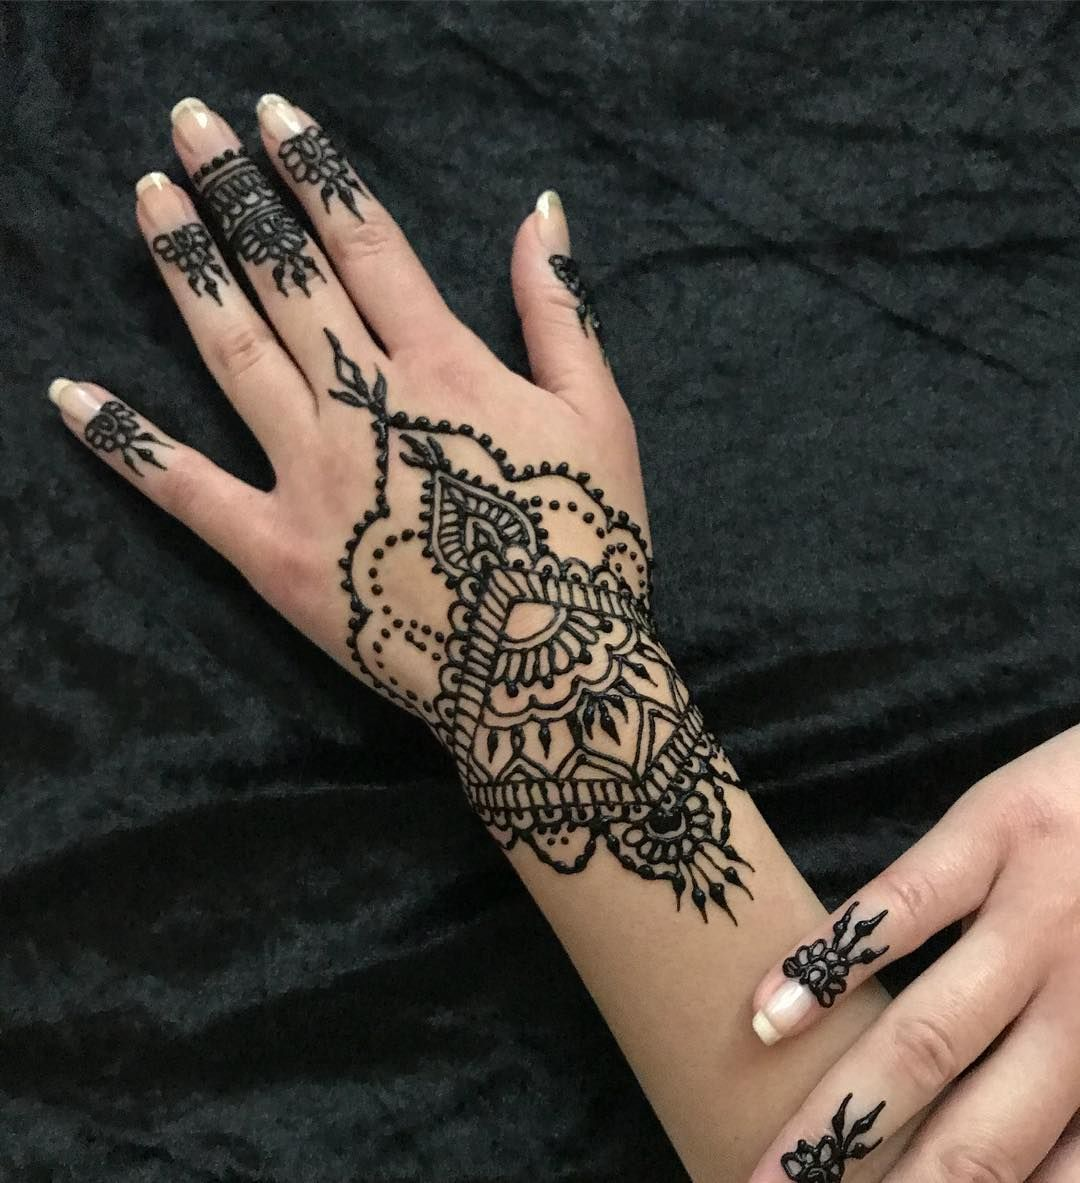 Henna Tattoo Design Ideas For Women Hand And More Henna Tattoo Designs Henna Tattoo Ideas Henna Tattoo Henna Tattoo Designs Henna Tattoo Henna Tattoo Hand